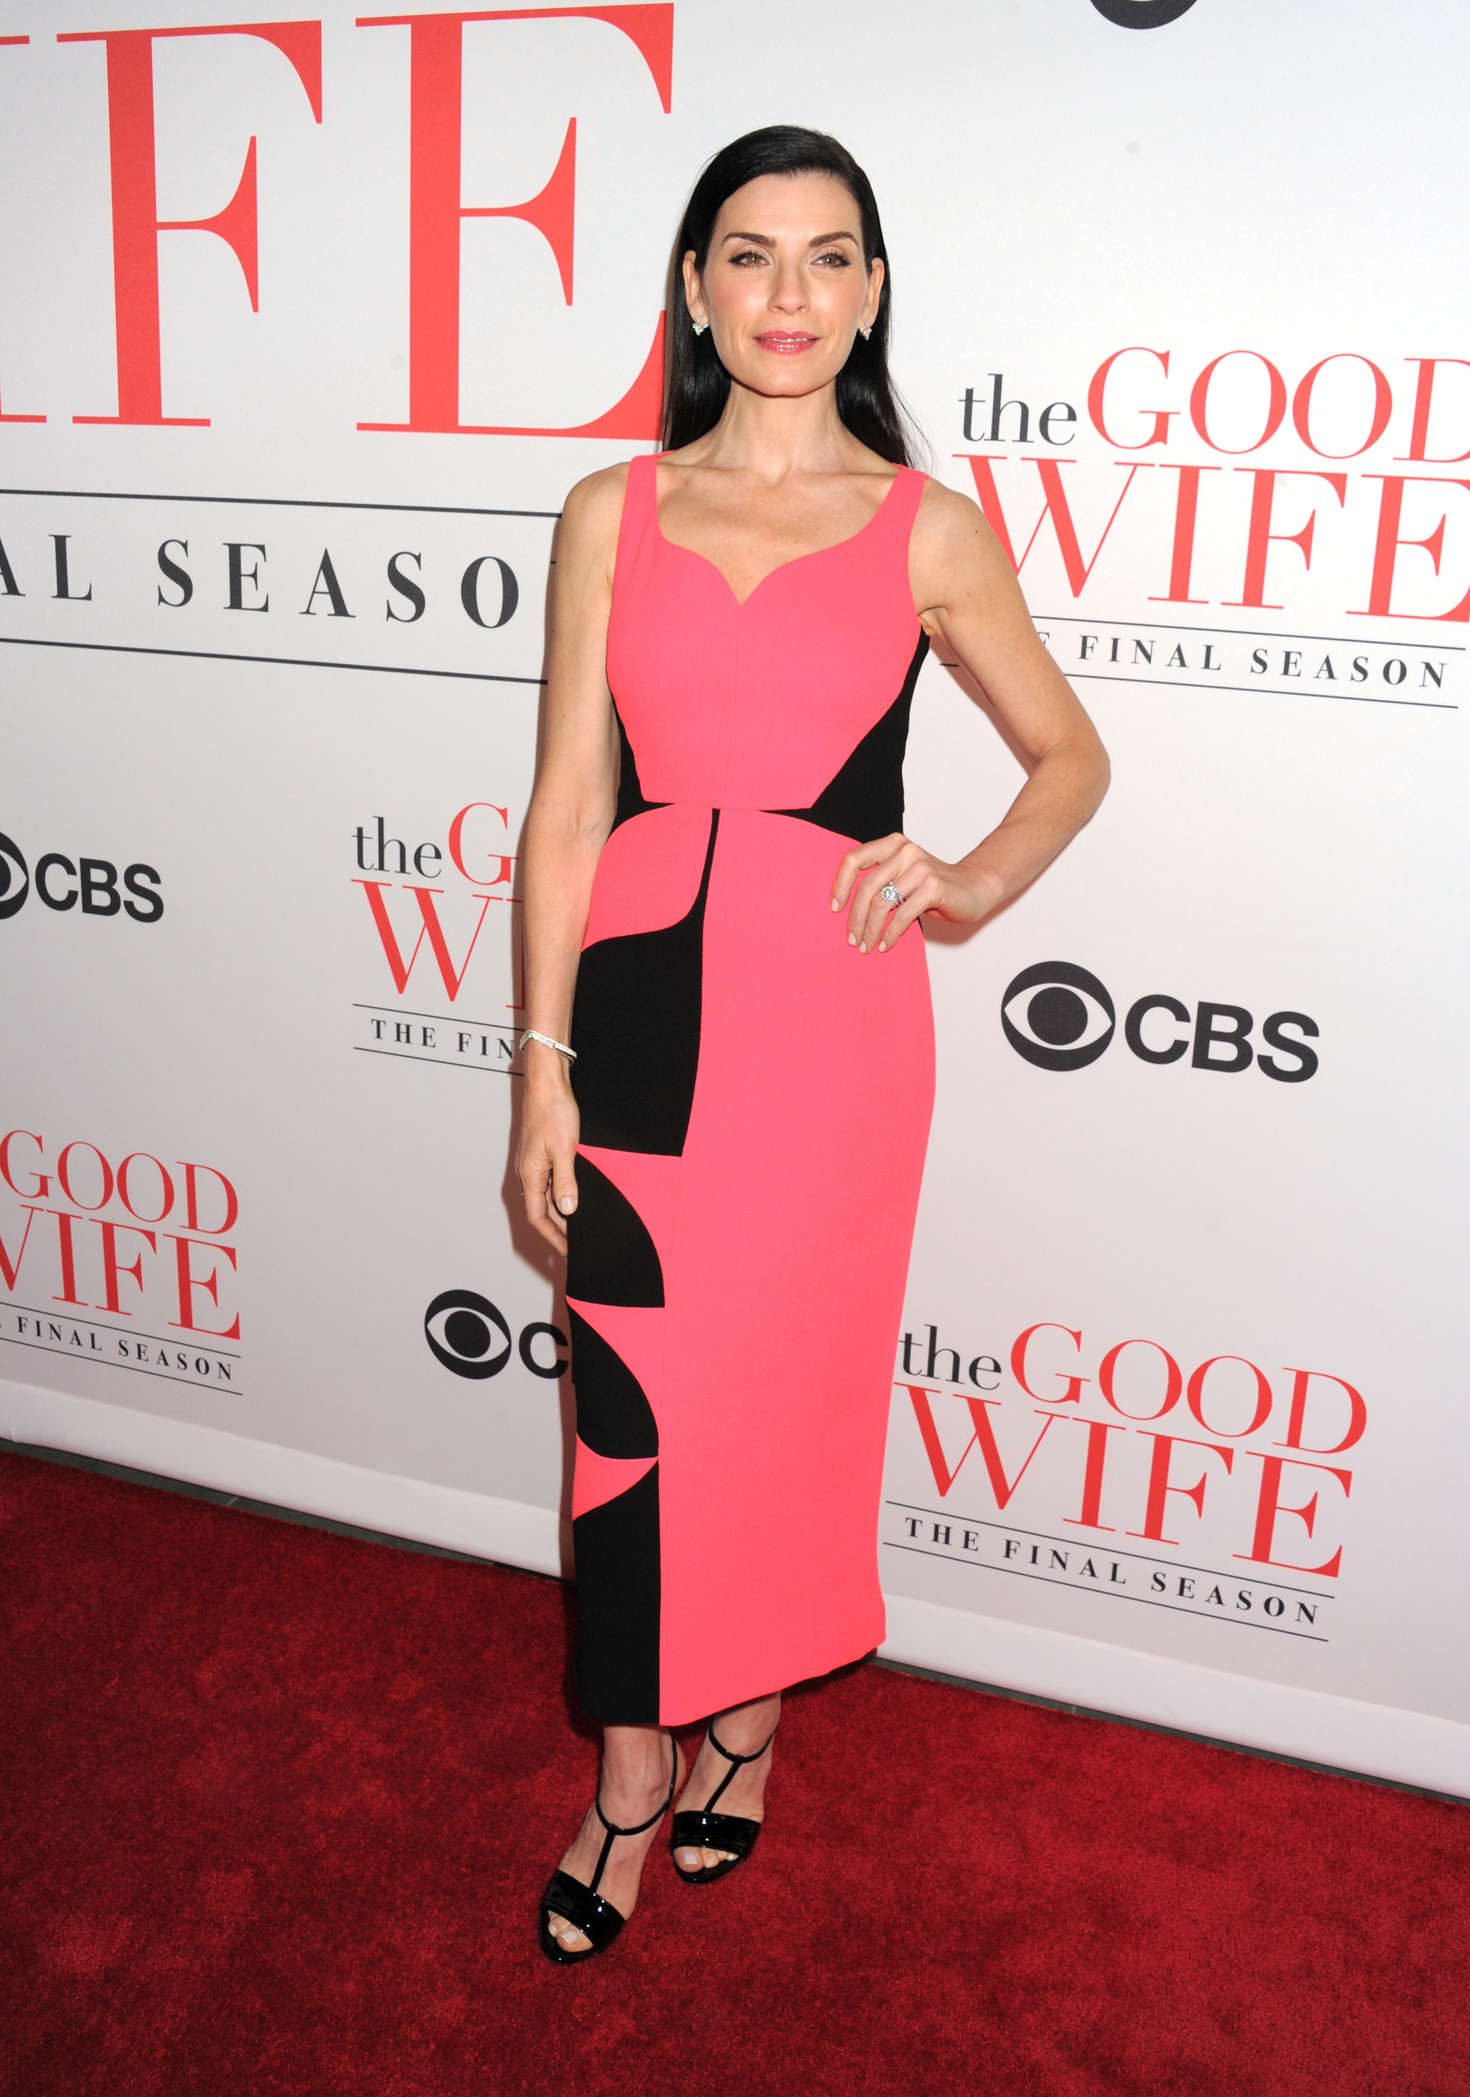 Julianna Margulies The Good Wife Finale Party in New York City